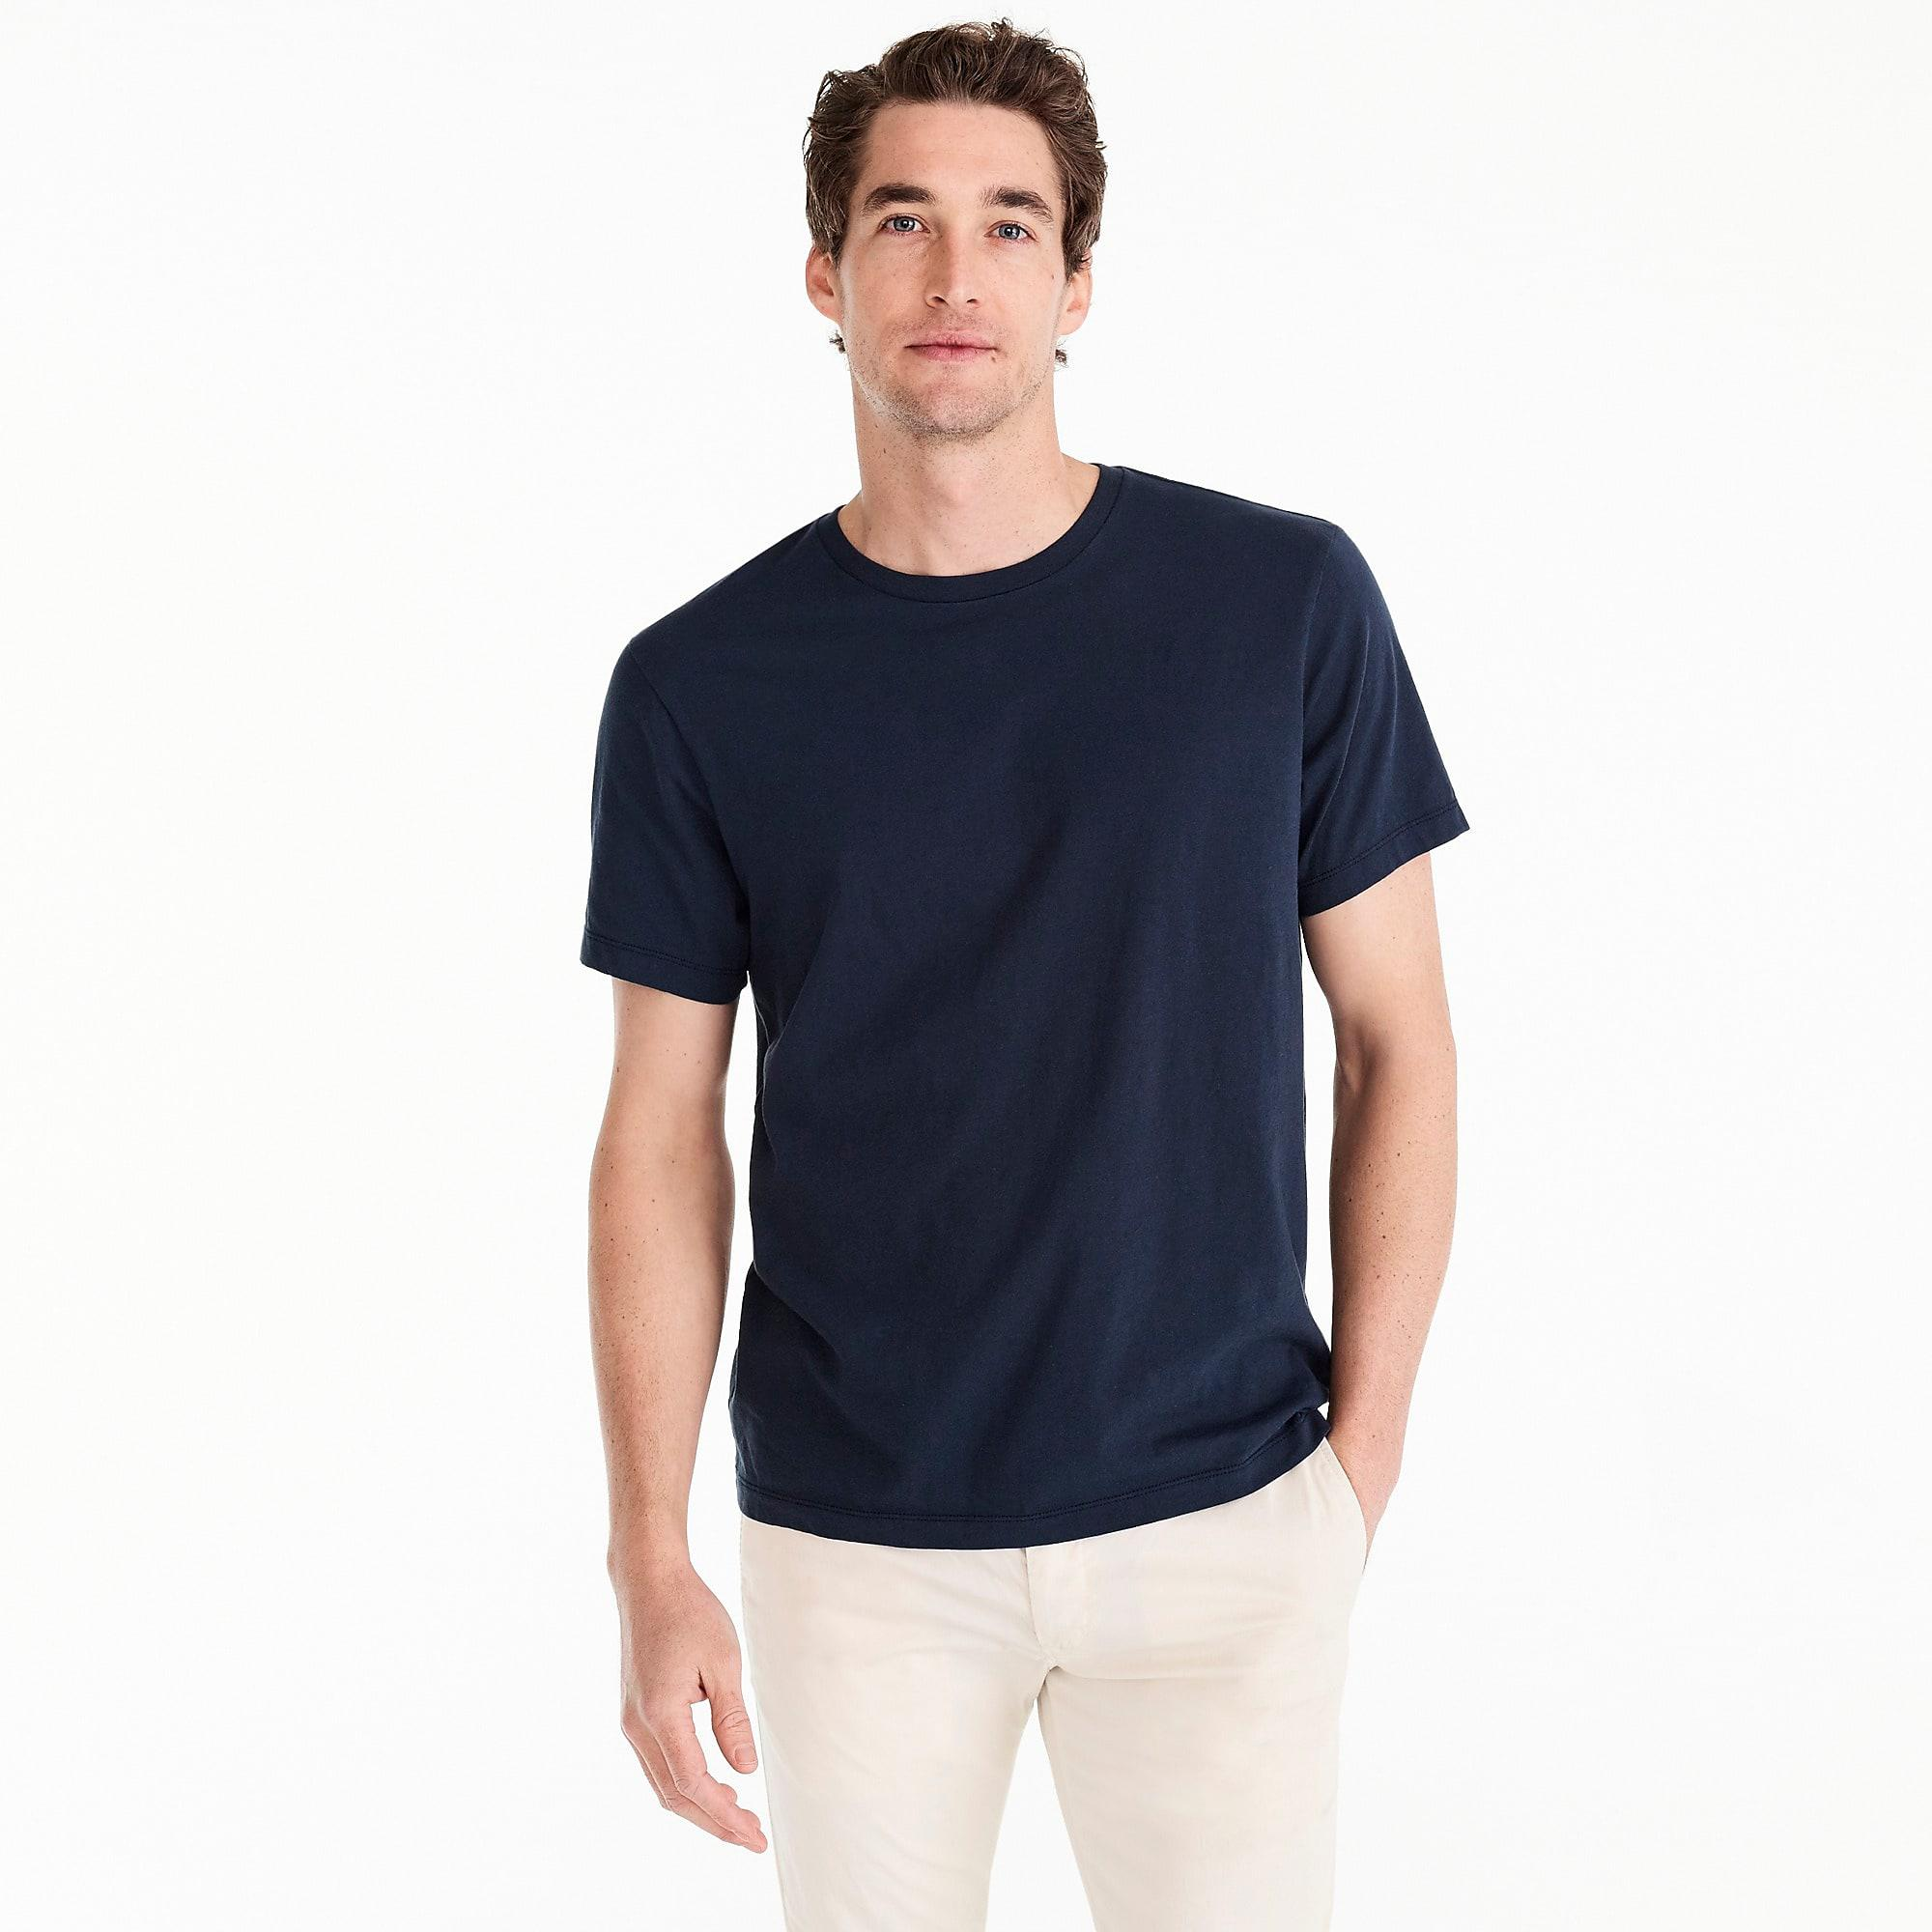 194e718784d J Crew Mens Pocket T Shirt